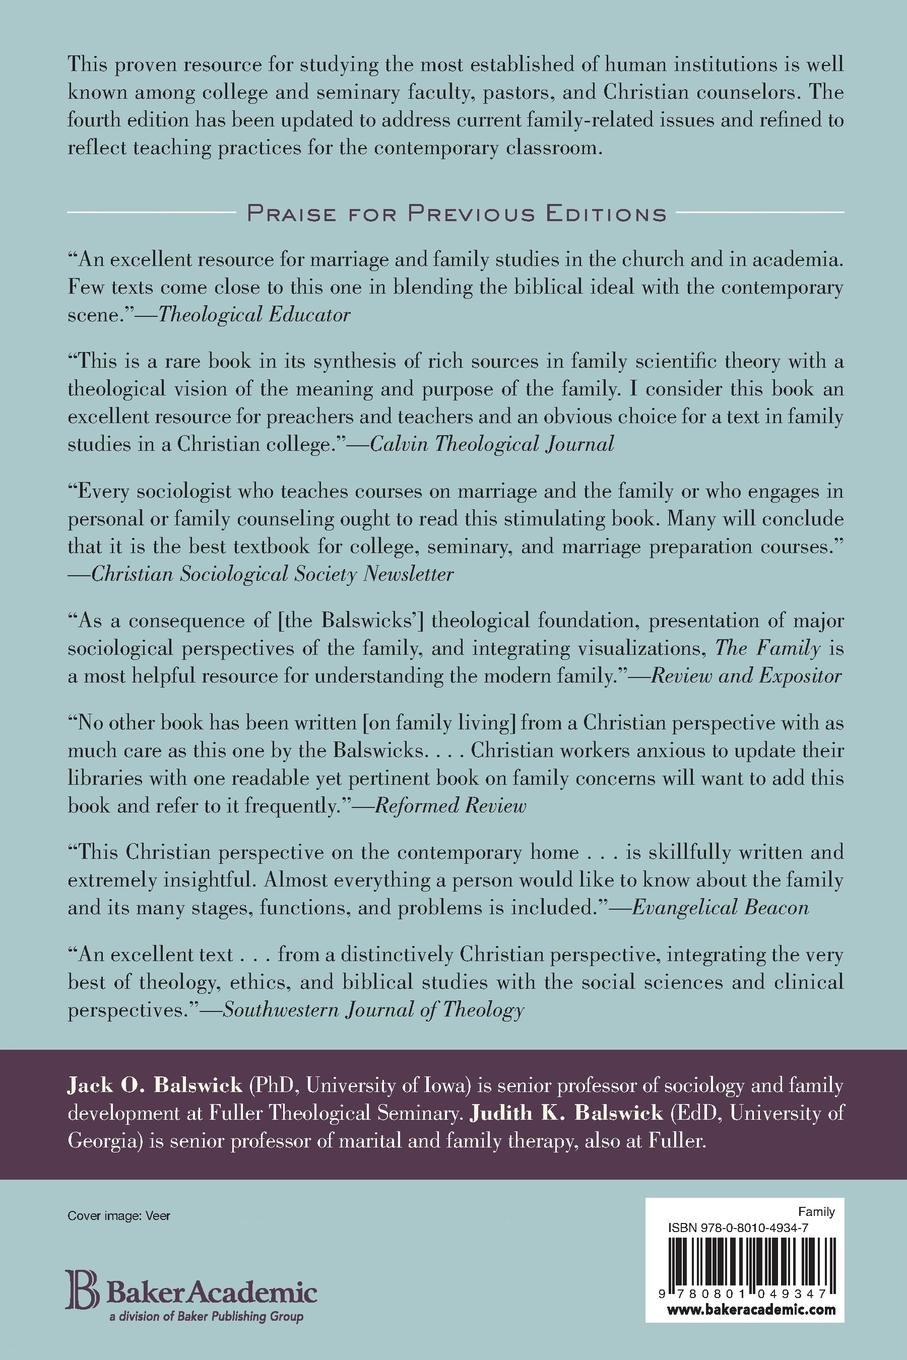 The family a christian perspective on the contemporary home jack o the family a christian perspective on the contemporary home jack o balswick judith k balswick 9780801049347 amazon books fandeluxe Choice Image